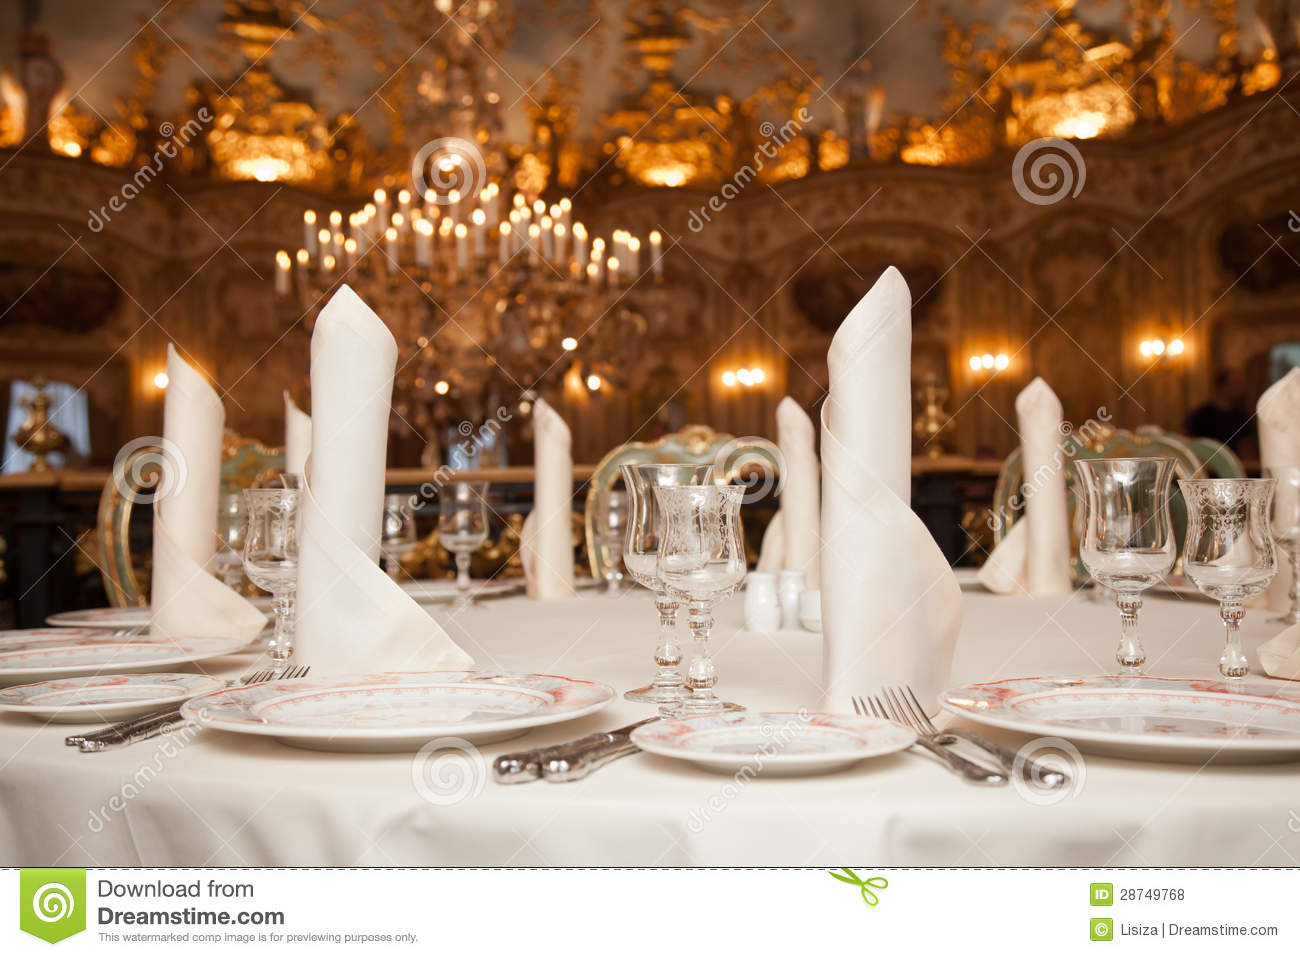 Restaurant Dinner Table Place Setting: Napkin, Wineglass, Plate Royalty  Free Stock Photos